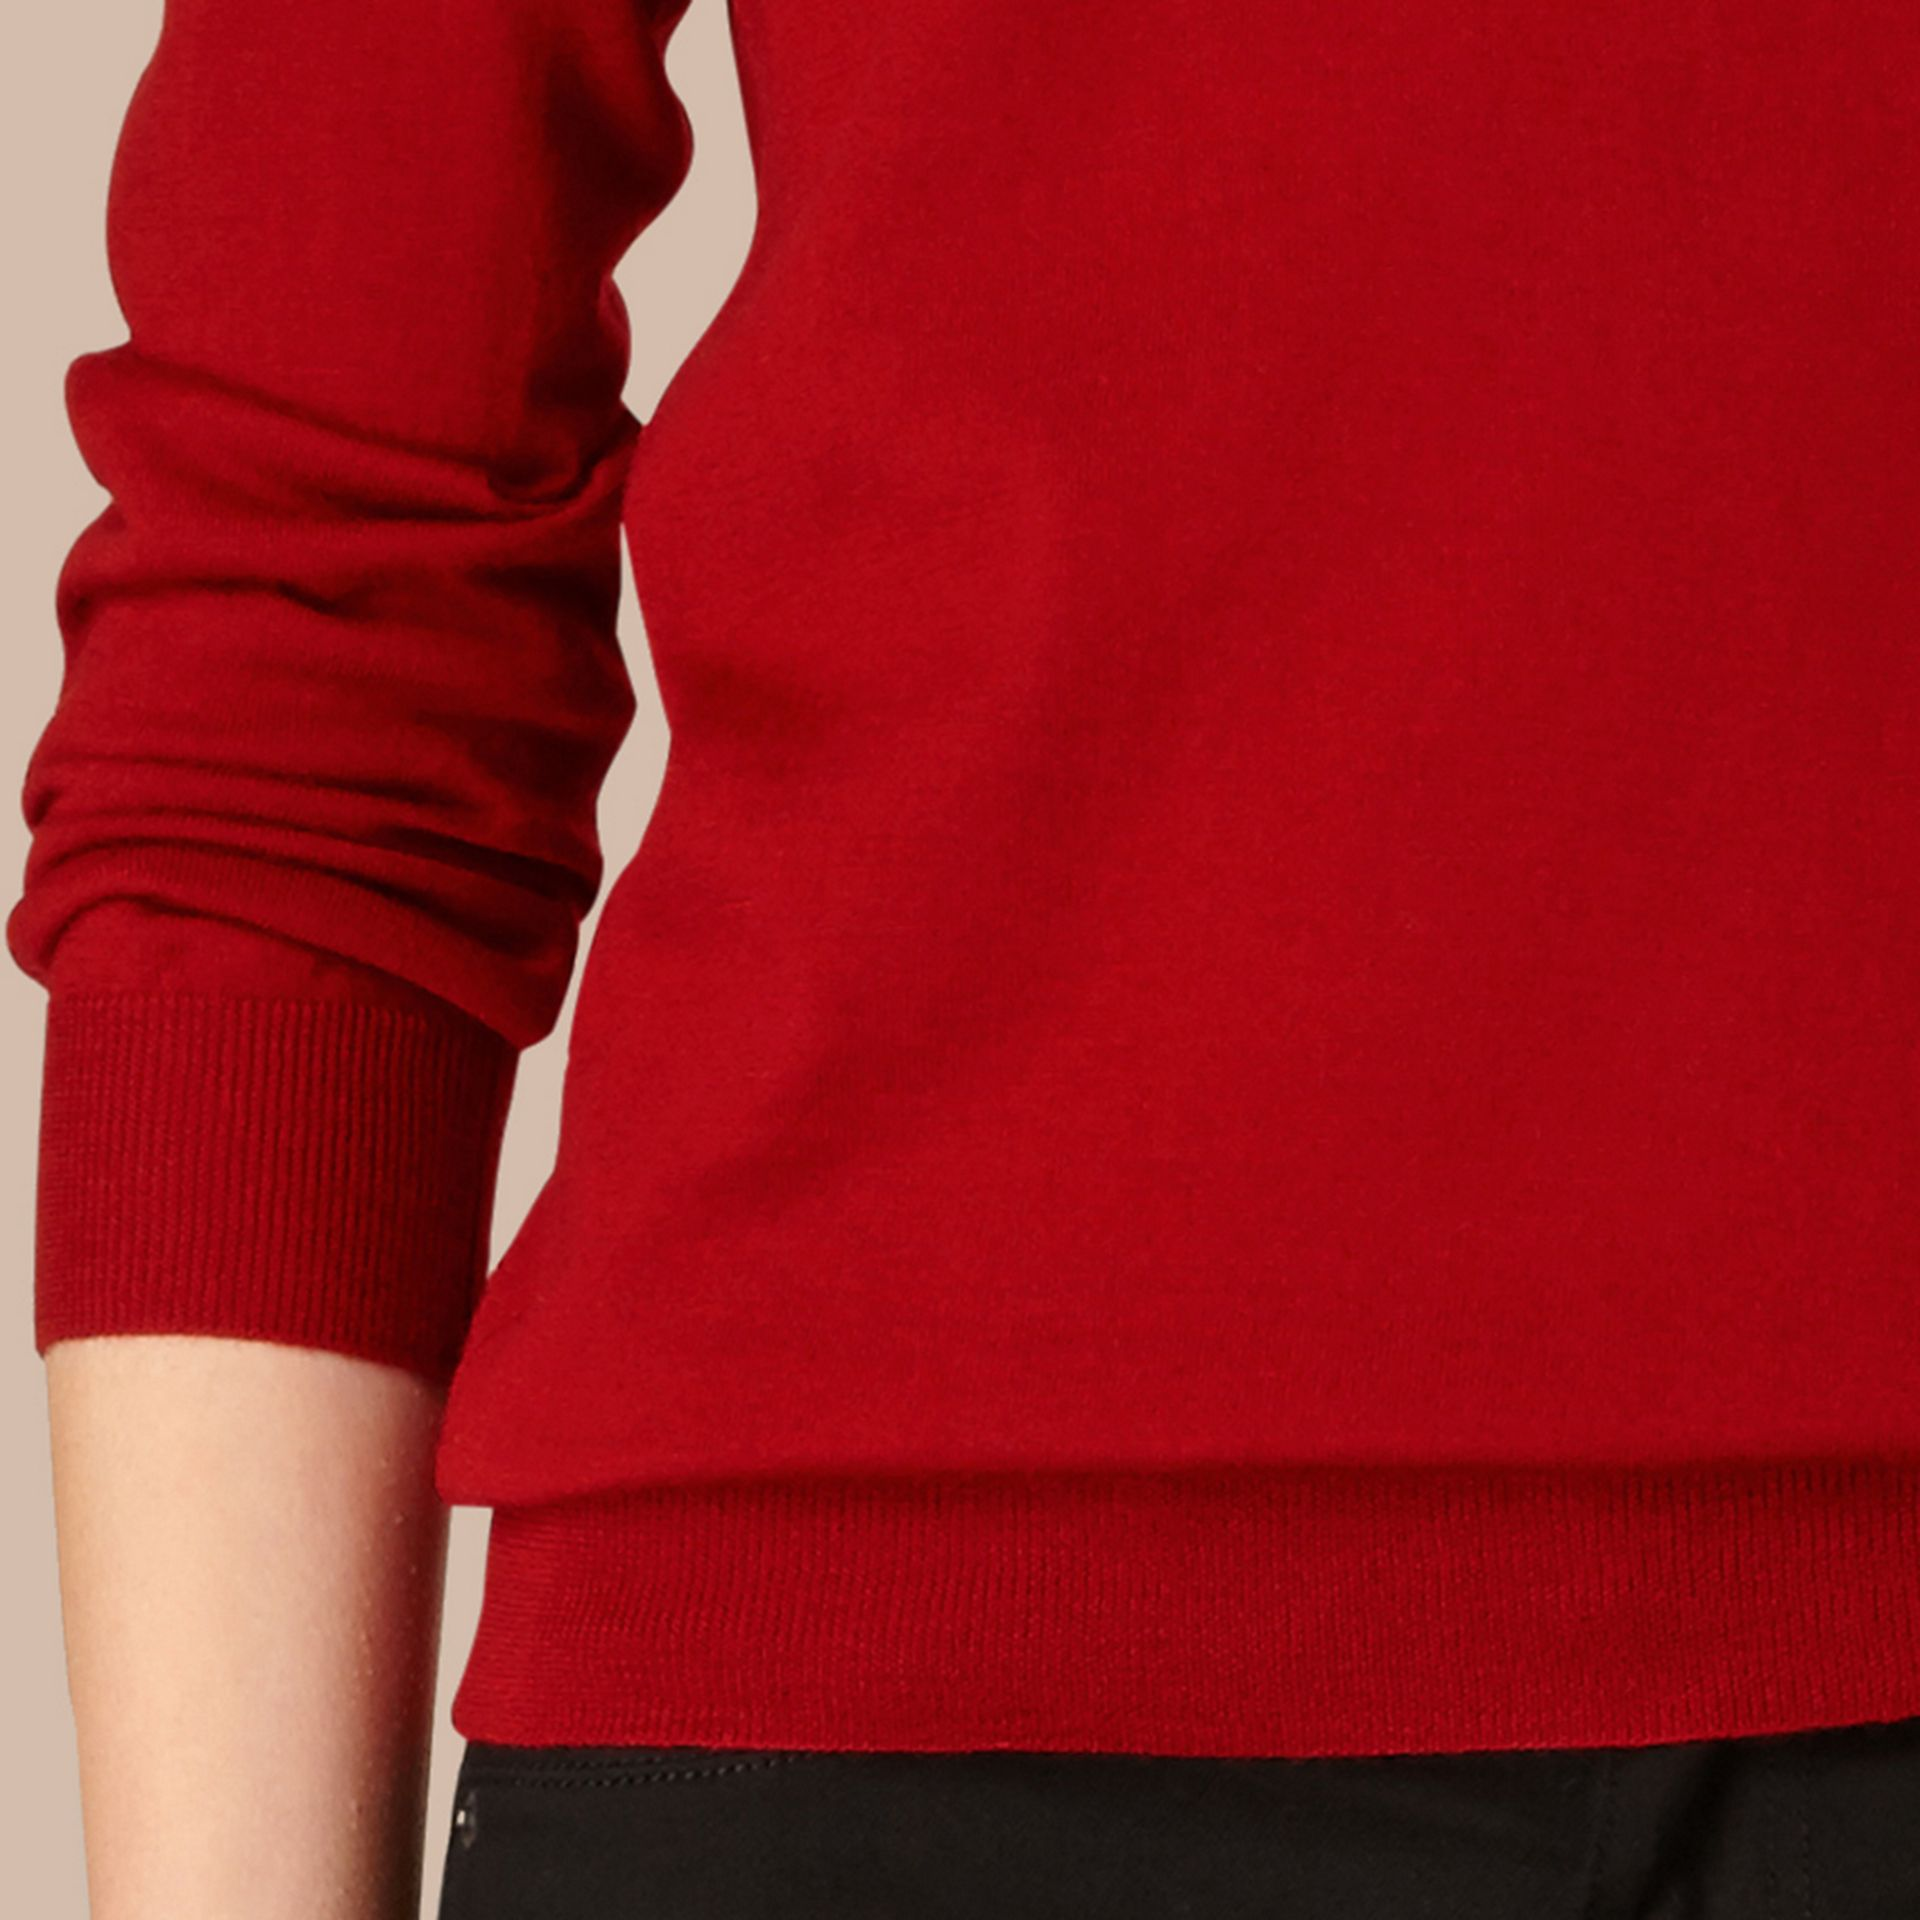 Parade red Check Detail Merino Crew Neck Sweater Parade Red - gallery image 2